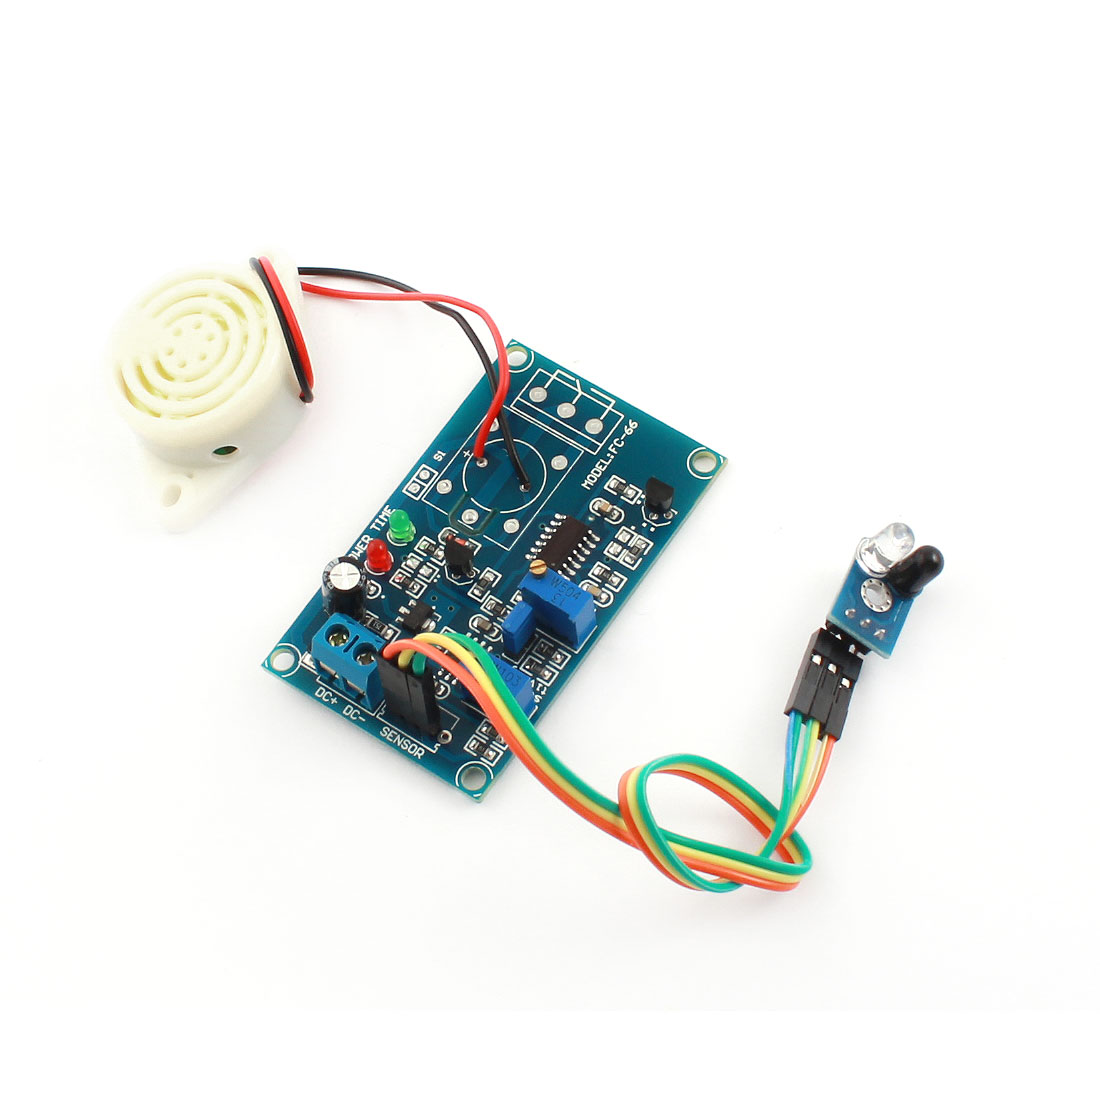 FC-66 DC24V 0-20S No Infrared Reflection Tigger Sensor Delay Alarm PCB Circuit Module Green w Piezo Buzzer